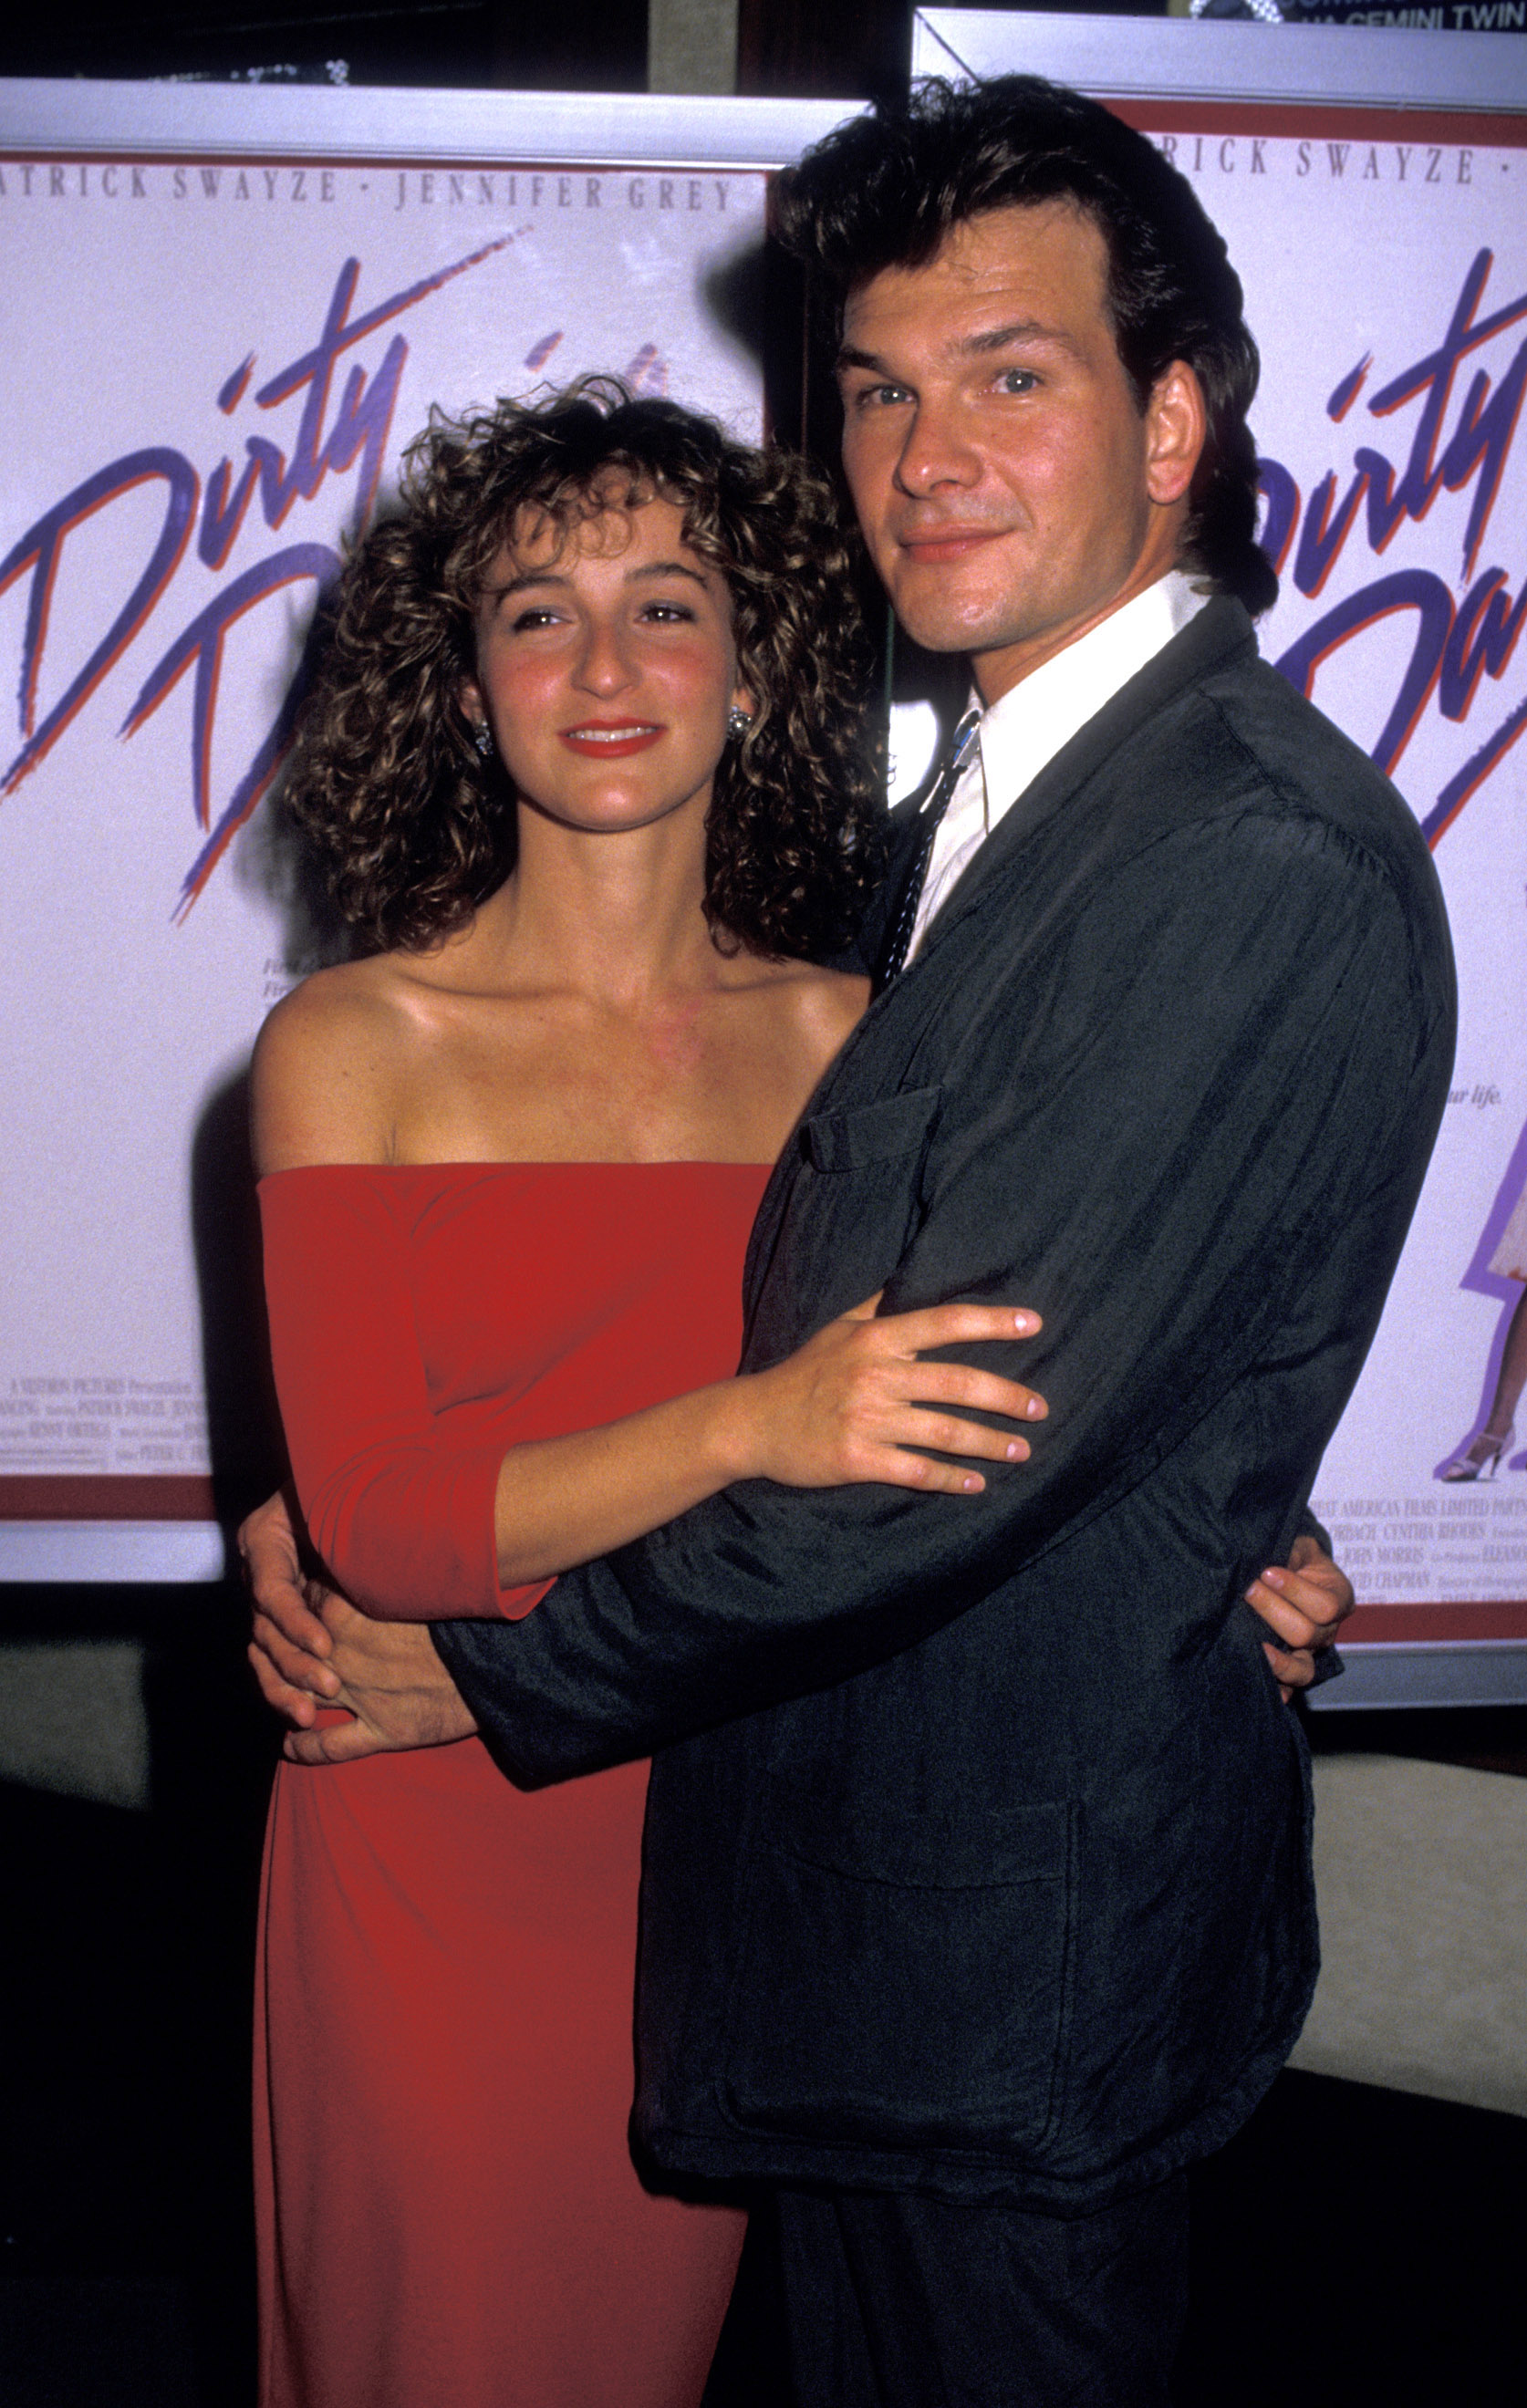 The stars of Dirty dancing, Jennifer Grey and Patrick Swayze in 1987